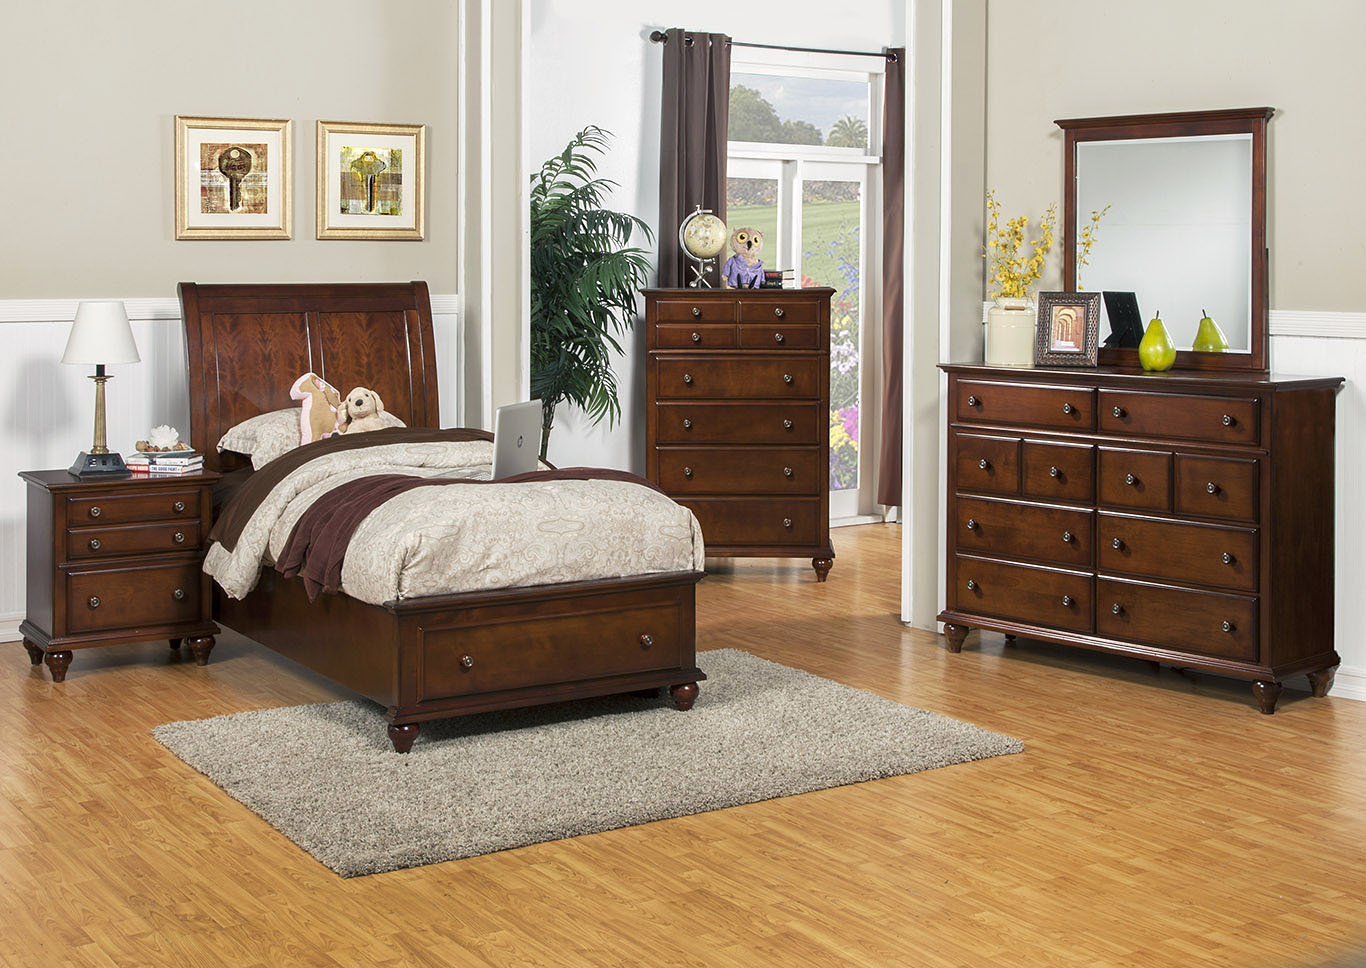 Spring Creek Tobacco Twin Storage Bed,New Classic